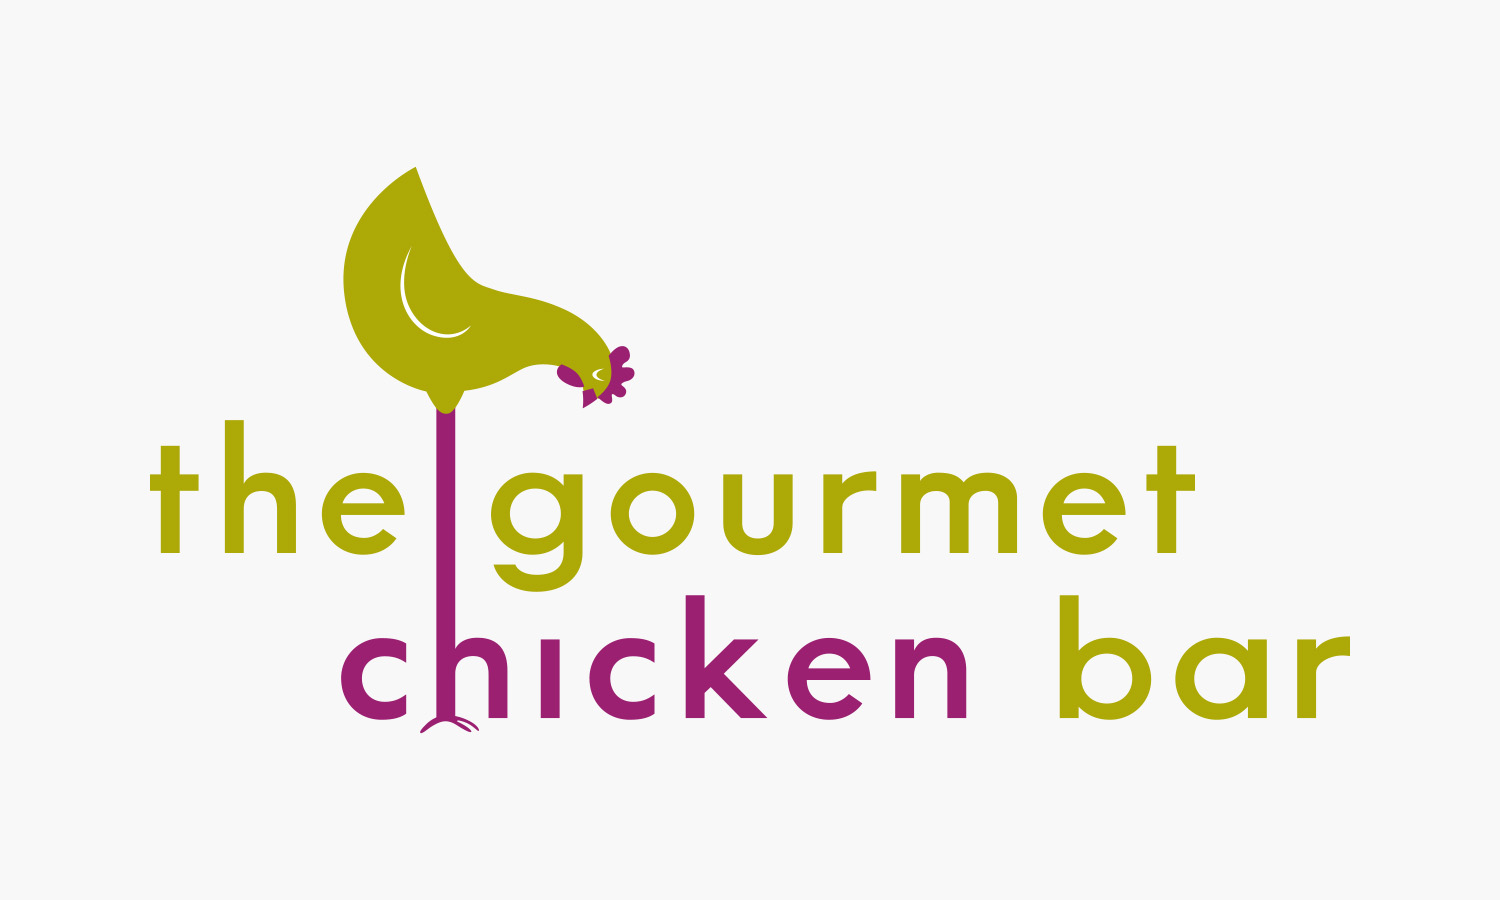 THE GOURMET CHICKEN BAR